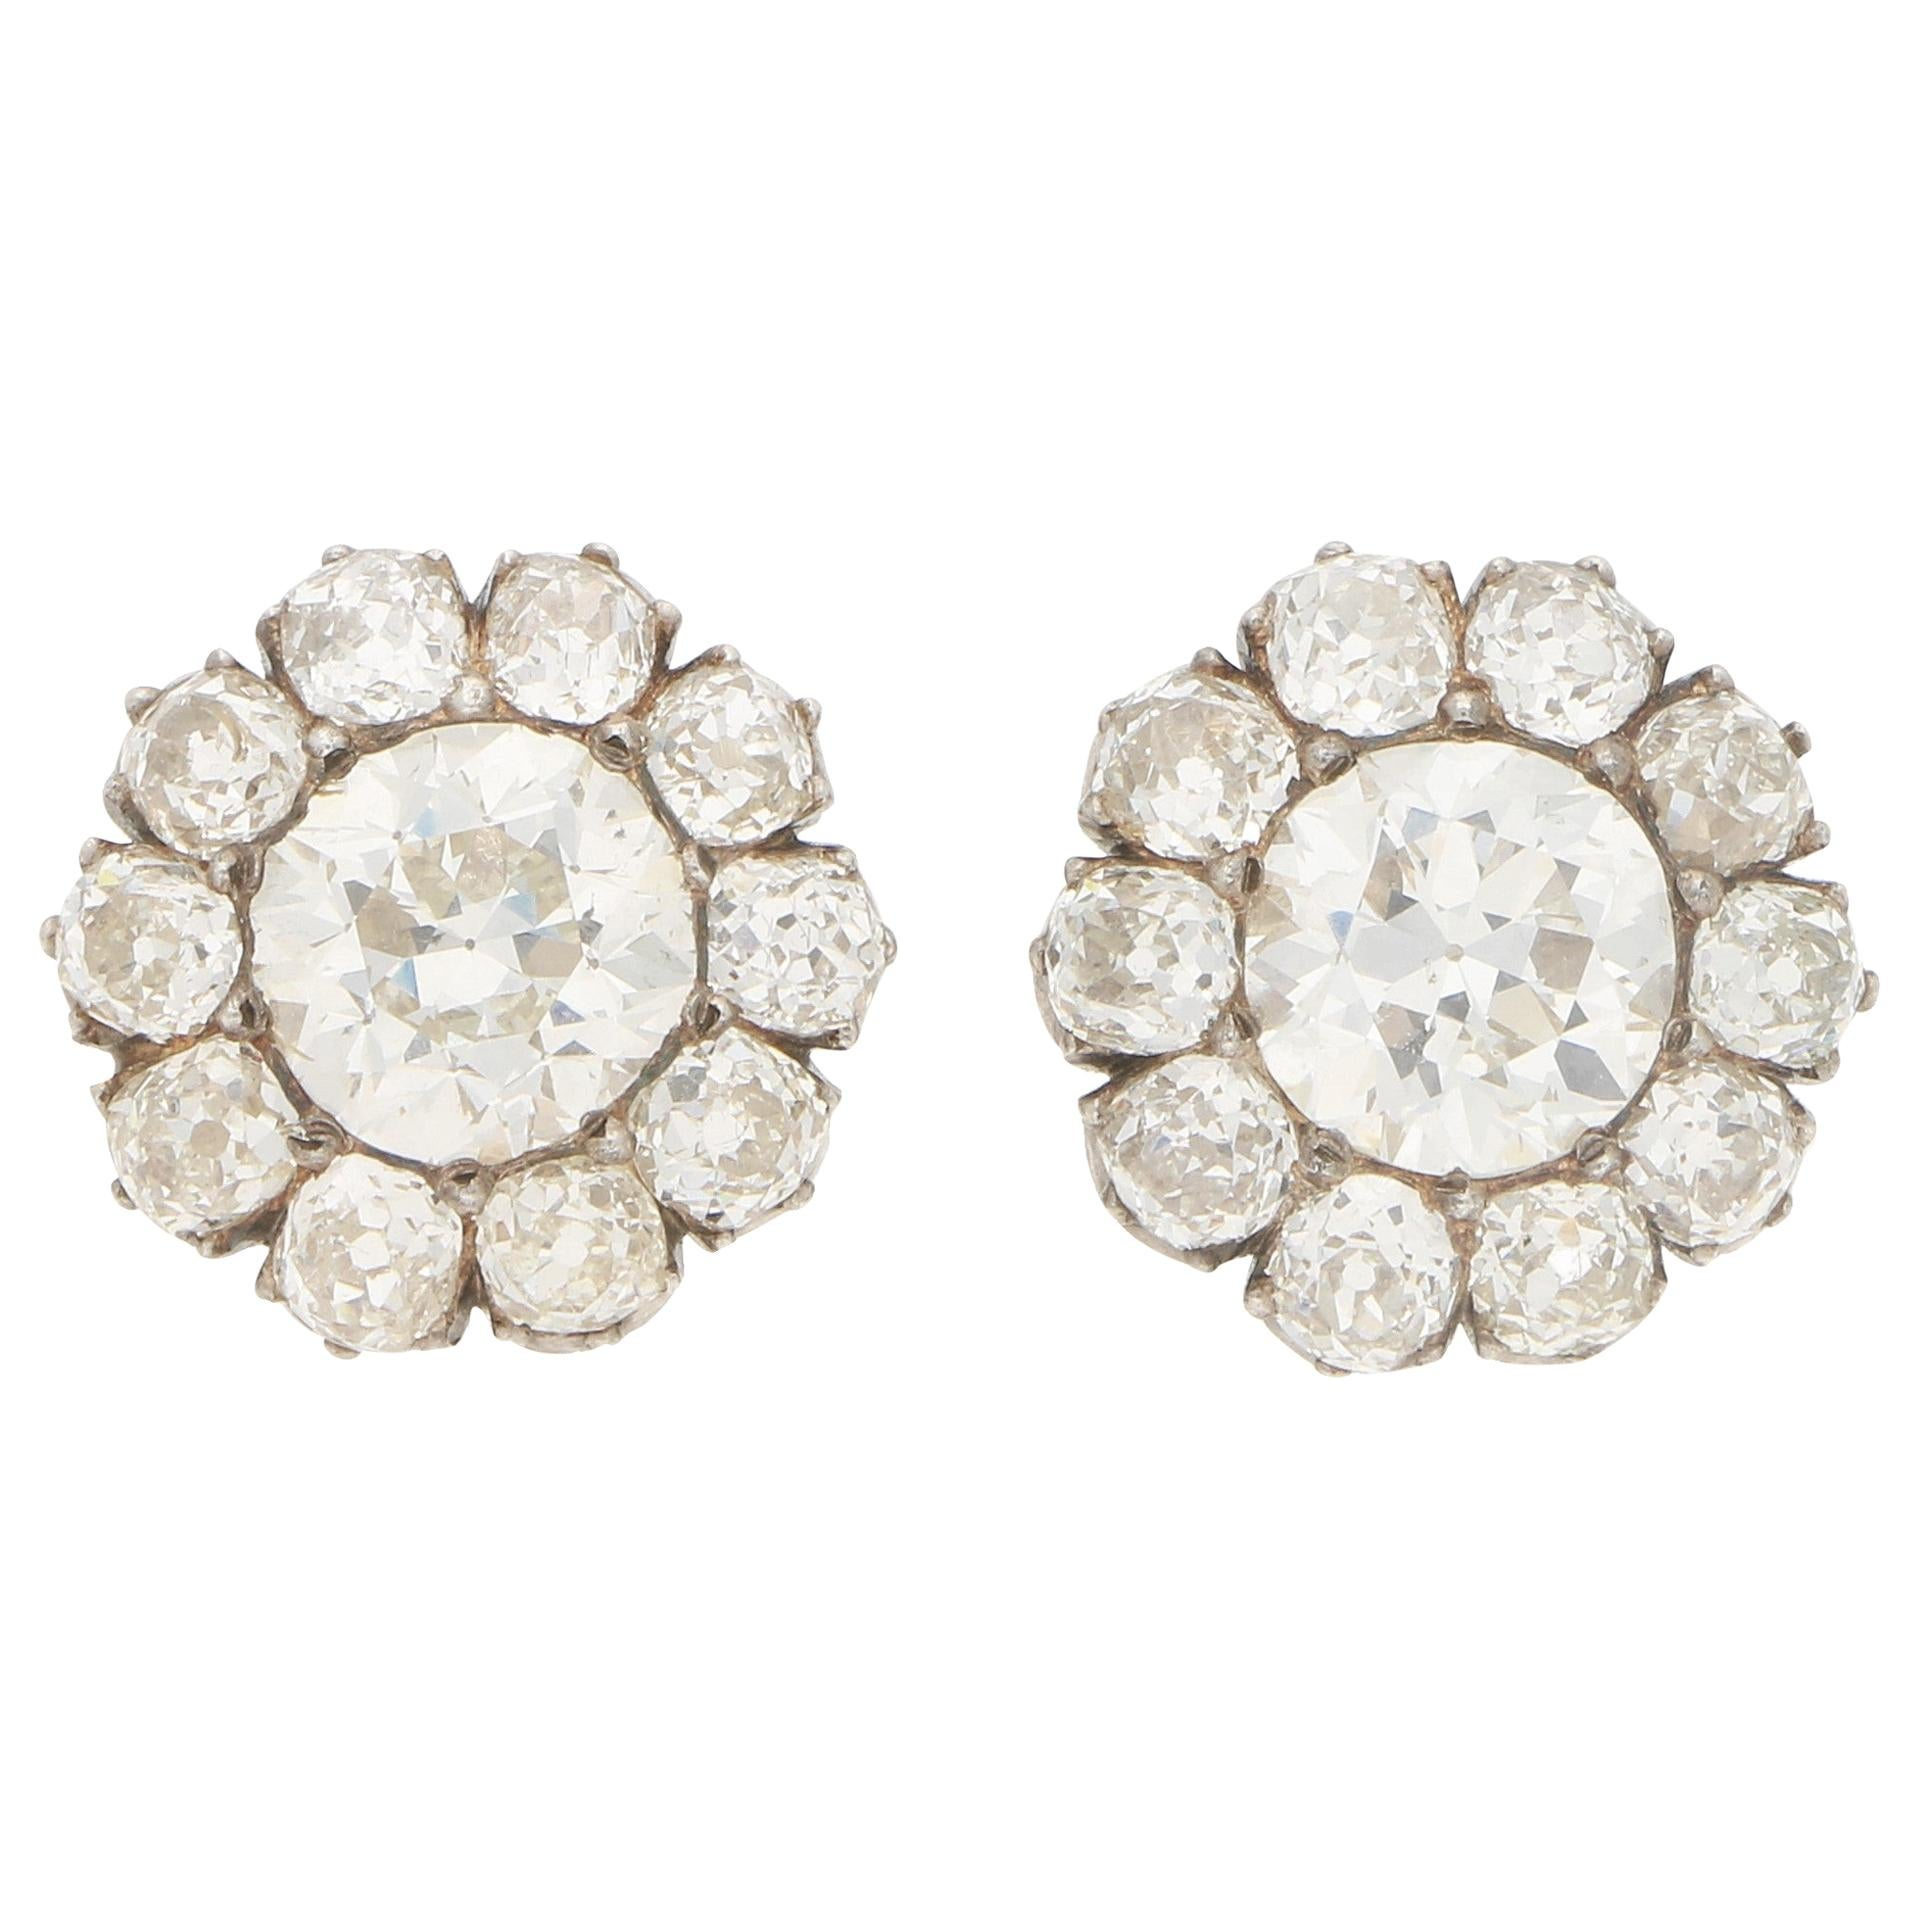 Victorian Large Old Mine Cut Diamond Cluster Earrings in Silver on Gold